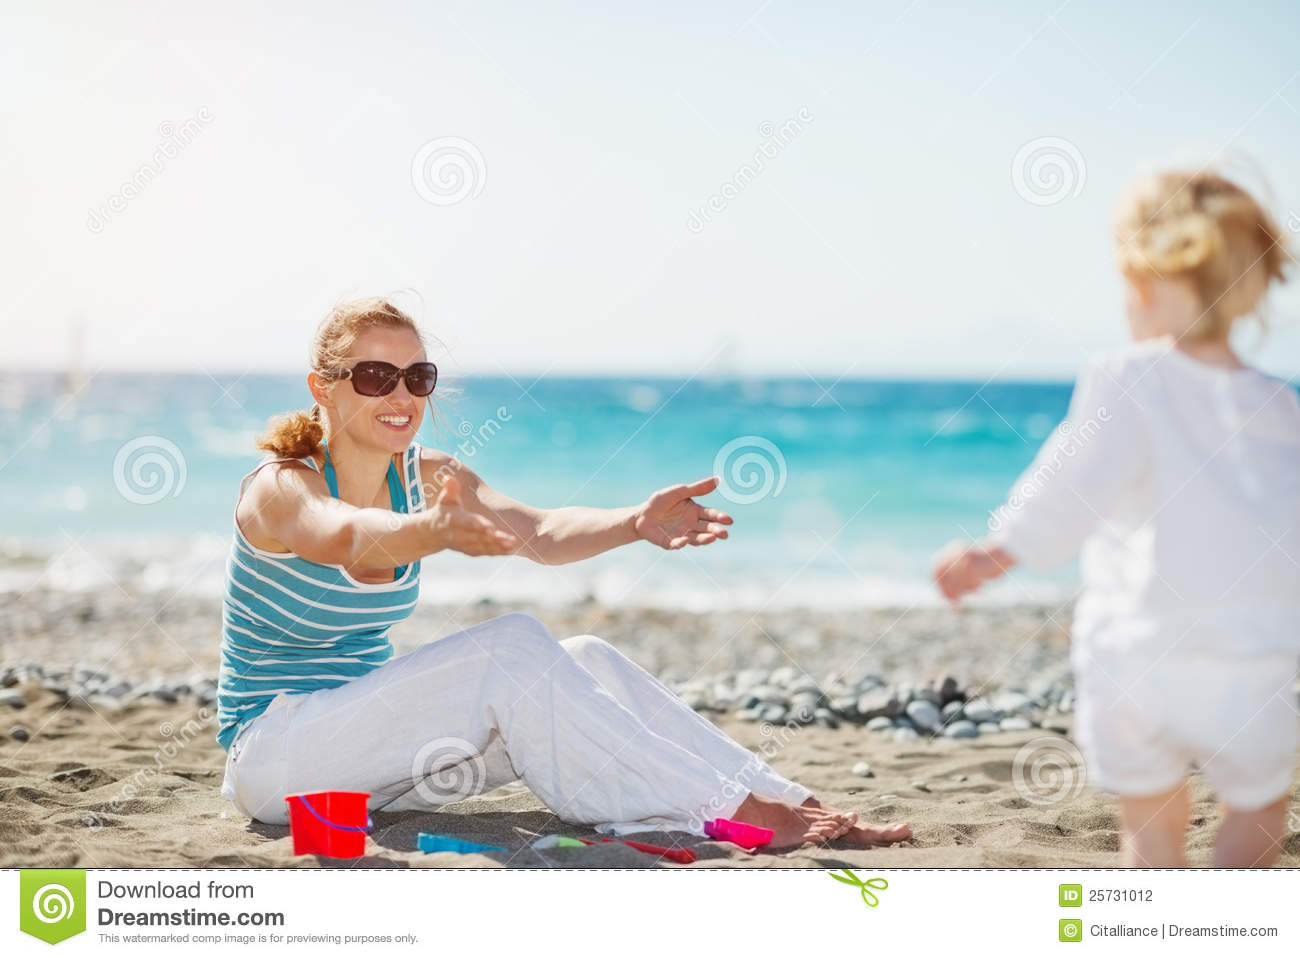 Mom playing with baby on beach